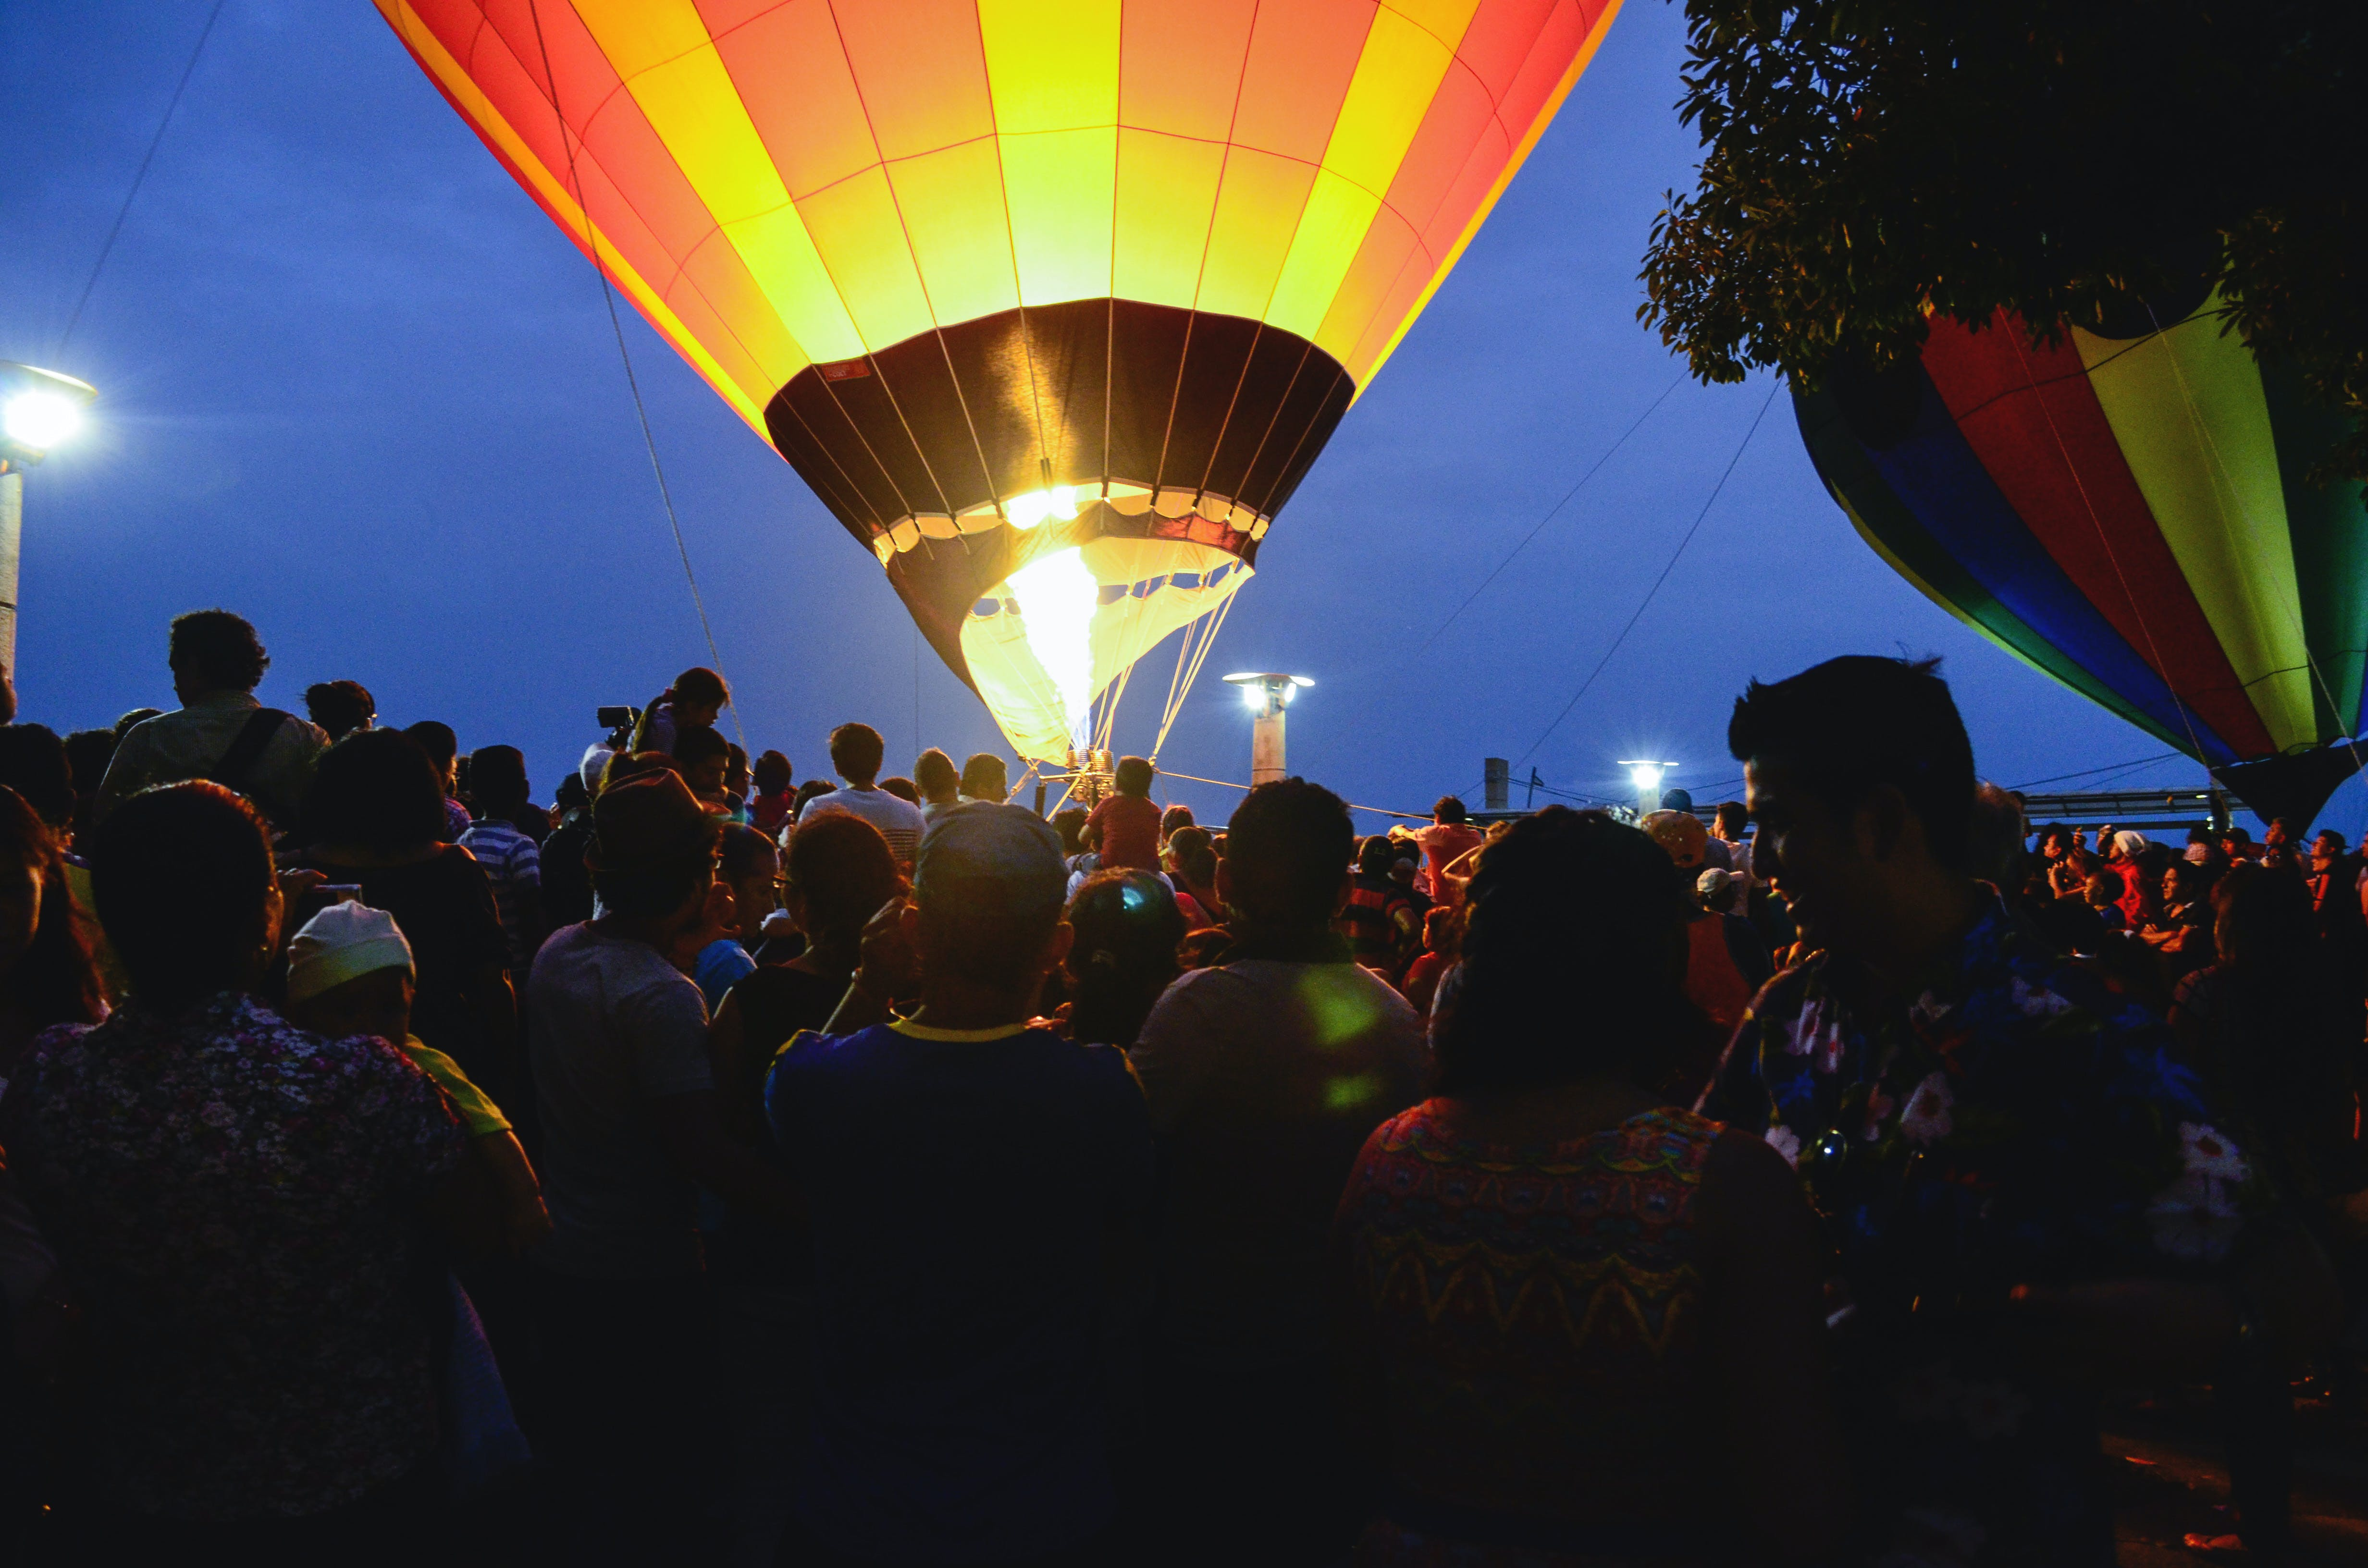 Group of People Gathered Near Hot Air Balloon